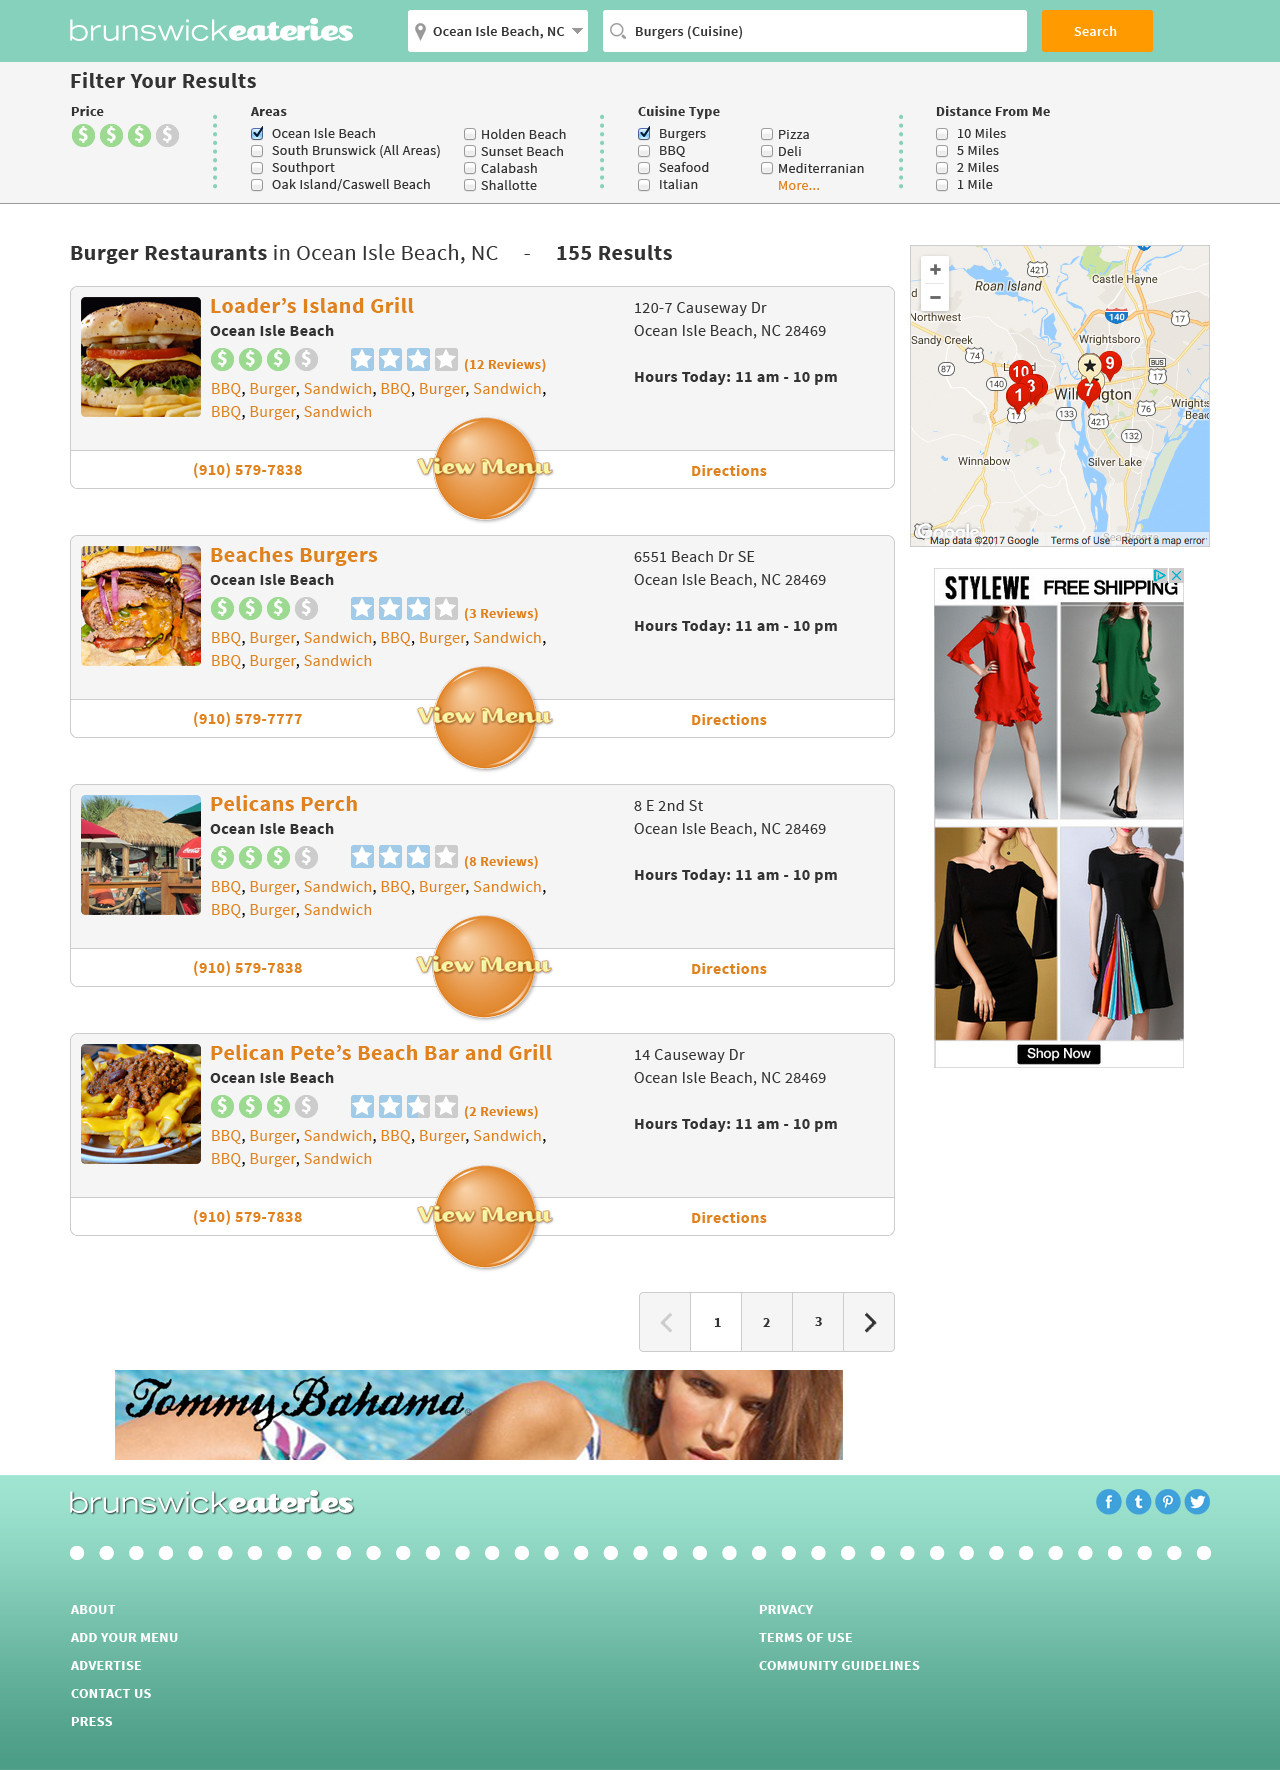 BrunswickEateries.com Search Results Page